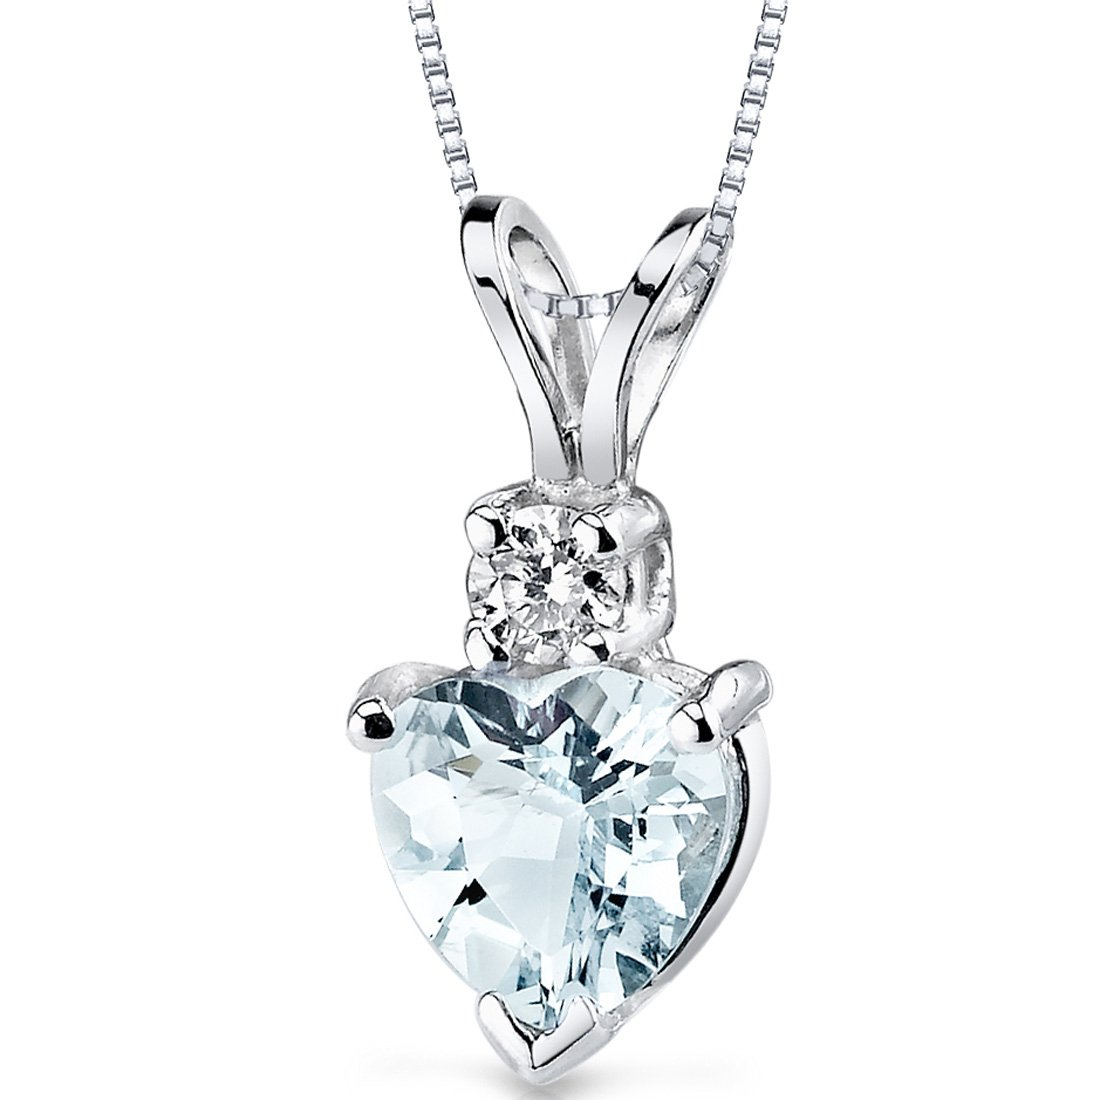 14 Karat White Gold Heart Shape 0.75 Carats Aquamarine Diamond Pendant by Peora